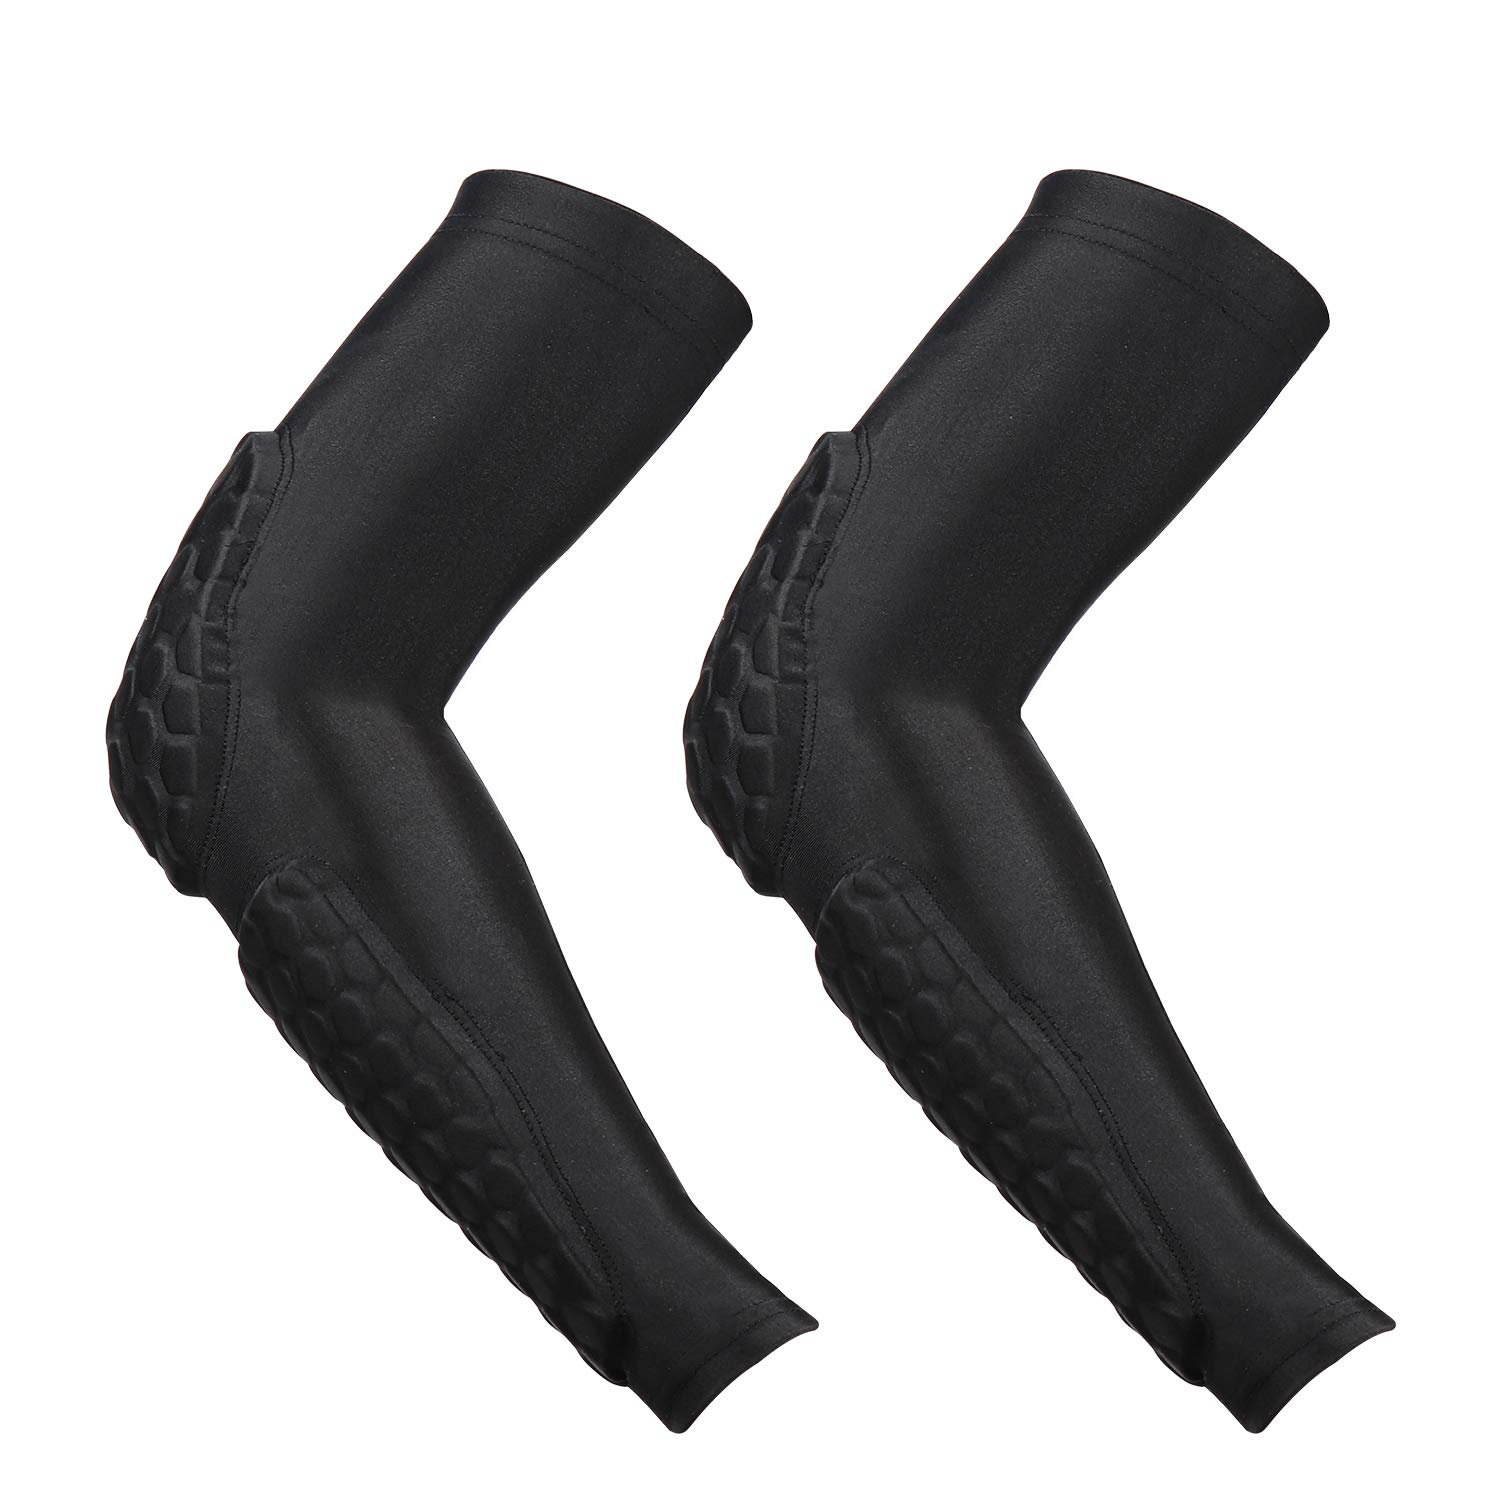 GUOZI Arm Elbow 55% OFF Sleeves Honeycomb Pack Crashproof Limited price sale 2